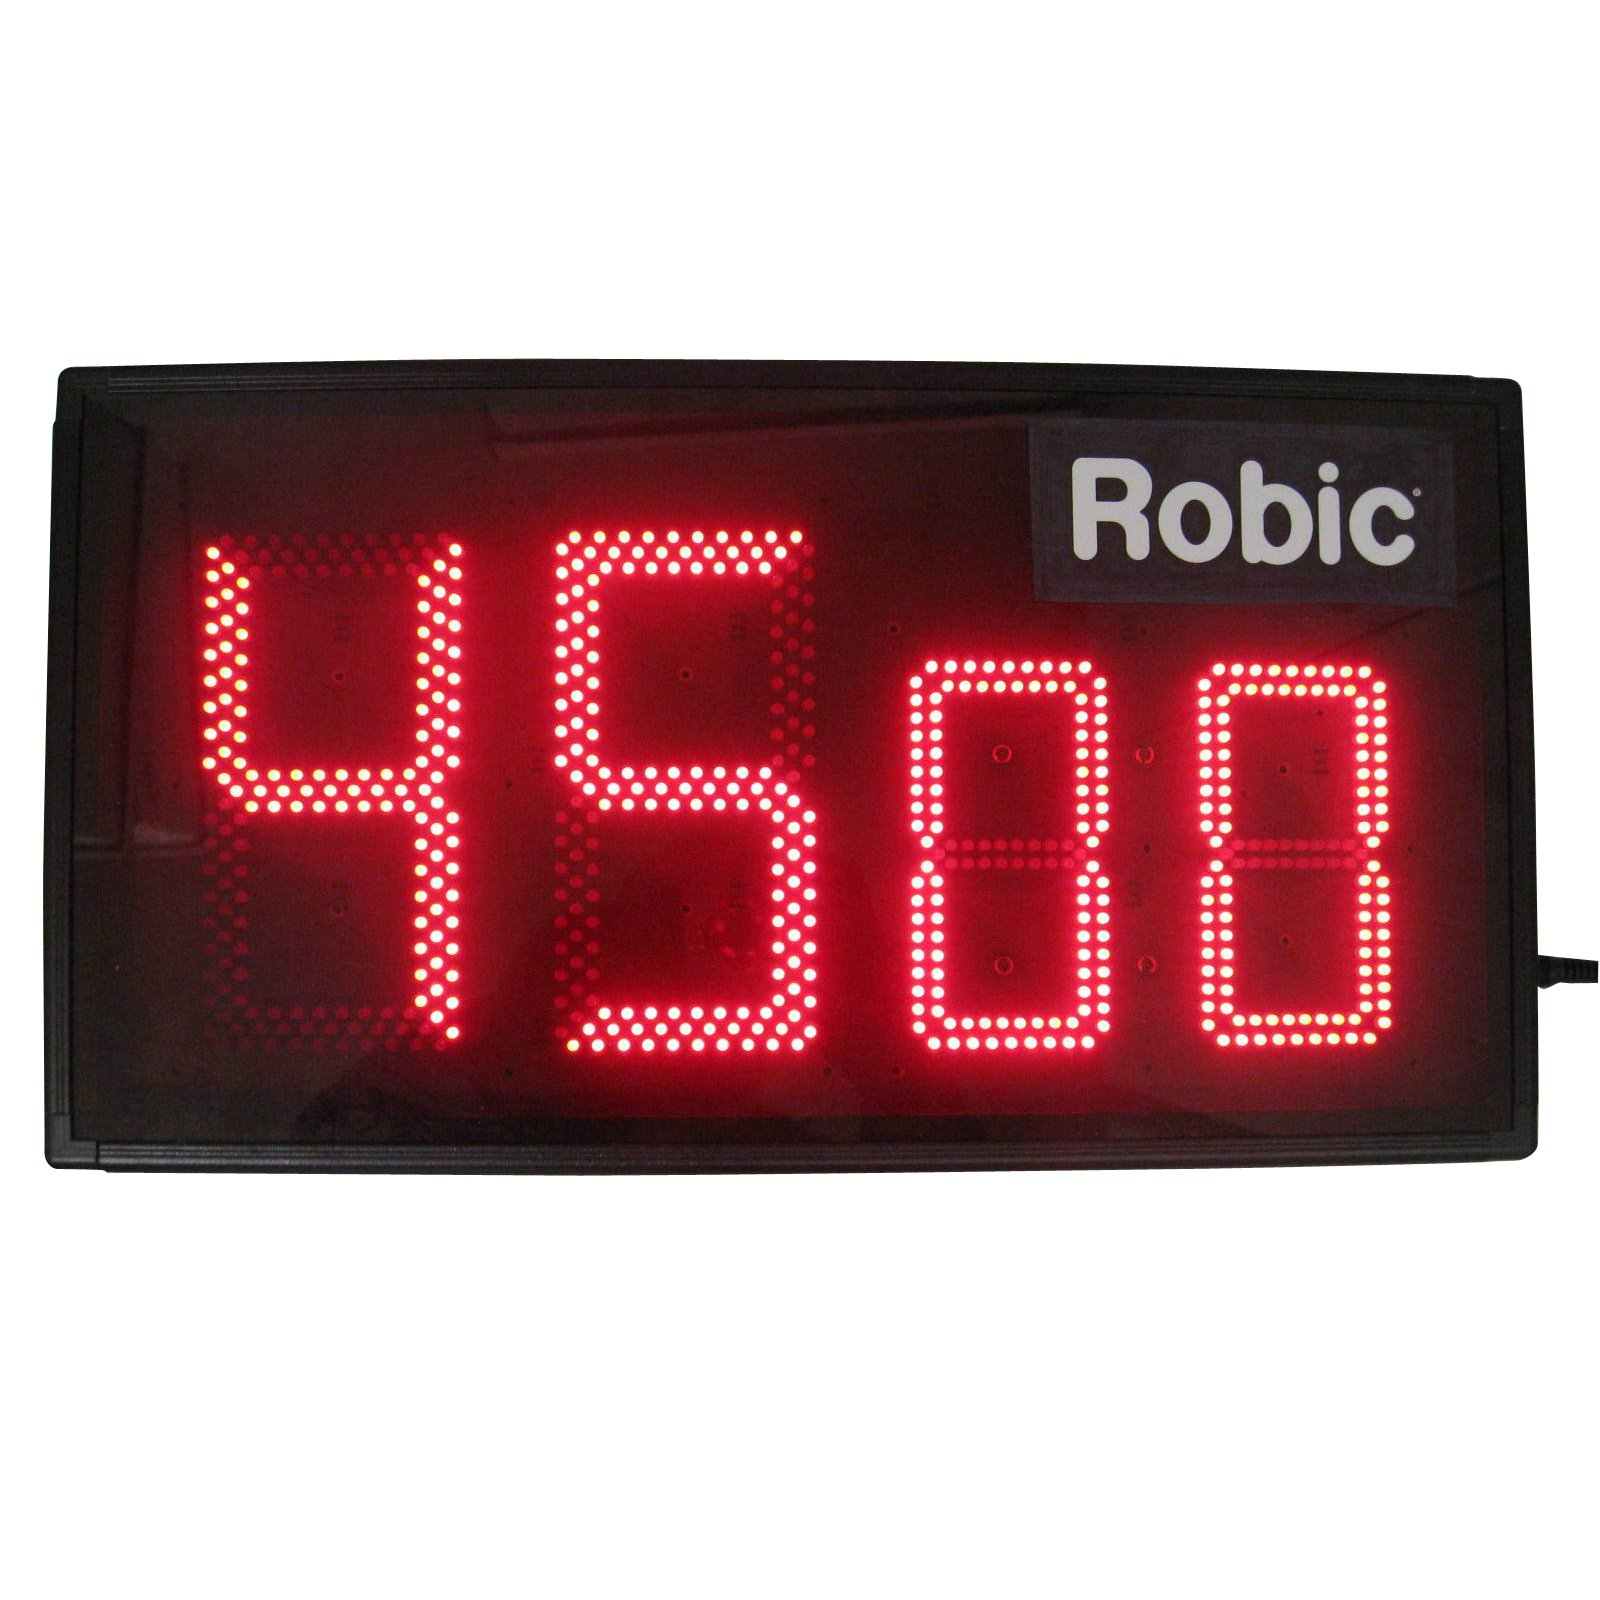 Robic M903 Bright View LED Display Timer by Marshall-Browning Int Corp